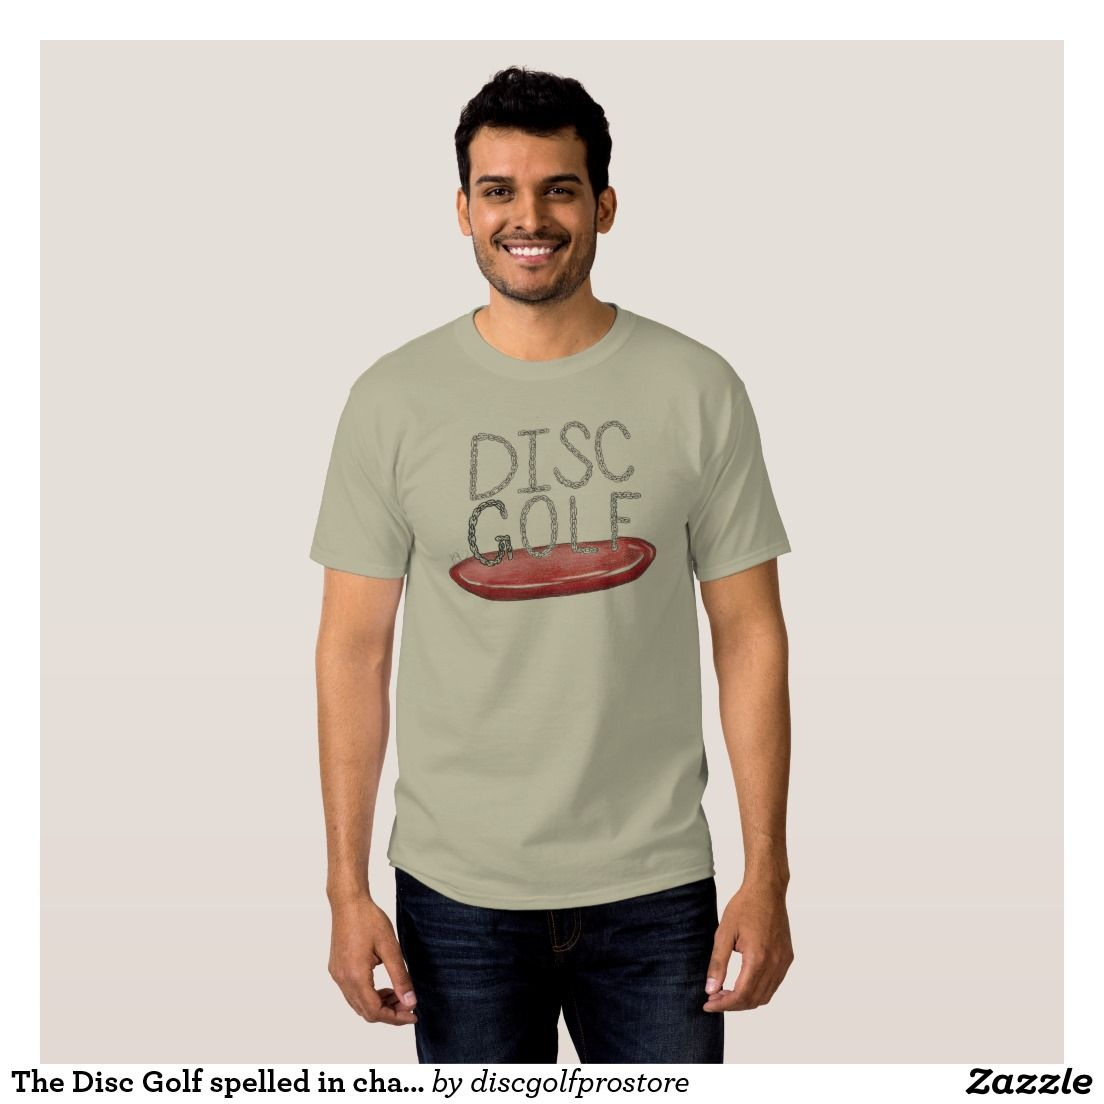 9f433f5f9d3bb The Disc Golf spelled in chains t-shirt | Zazzle.com | I ♥ Disc ...